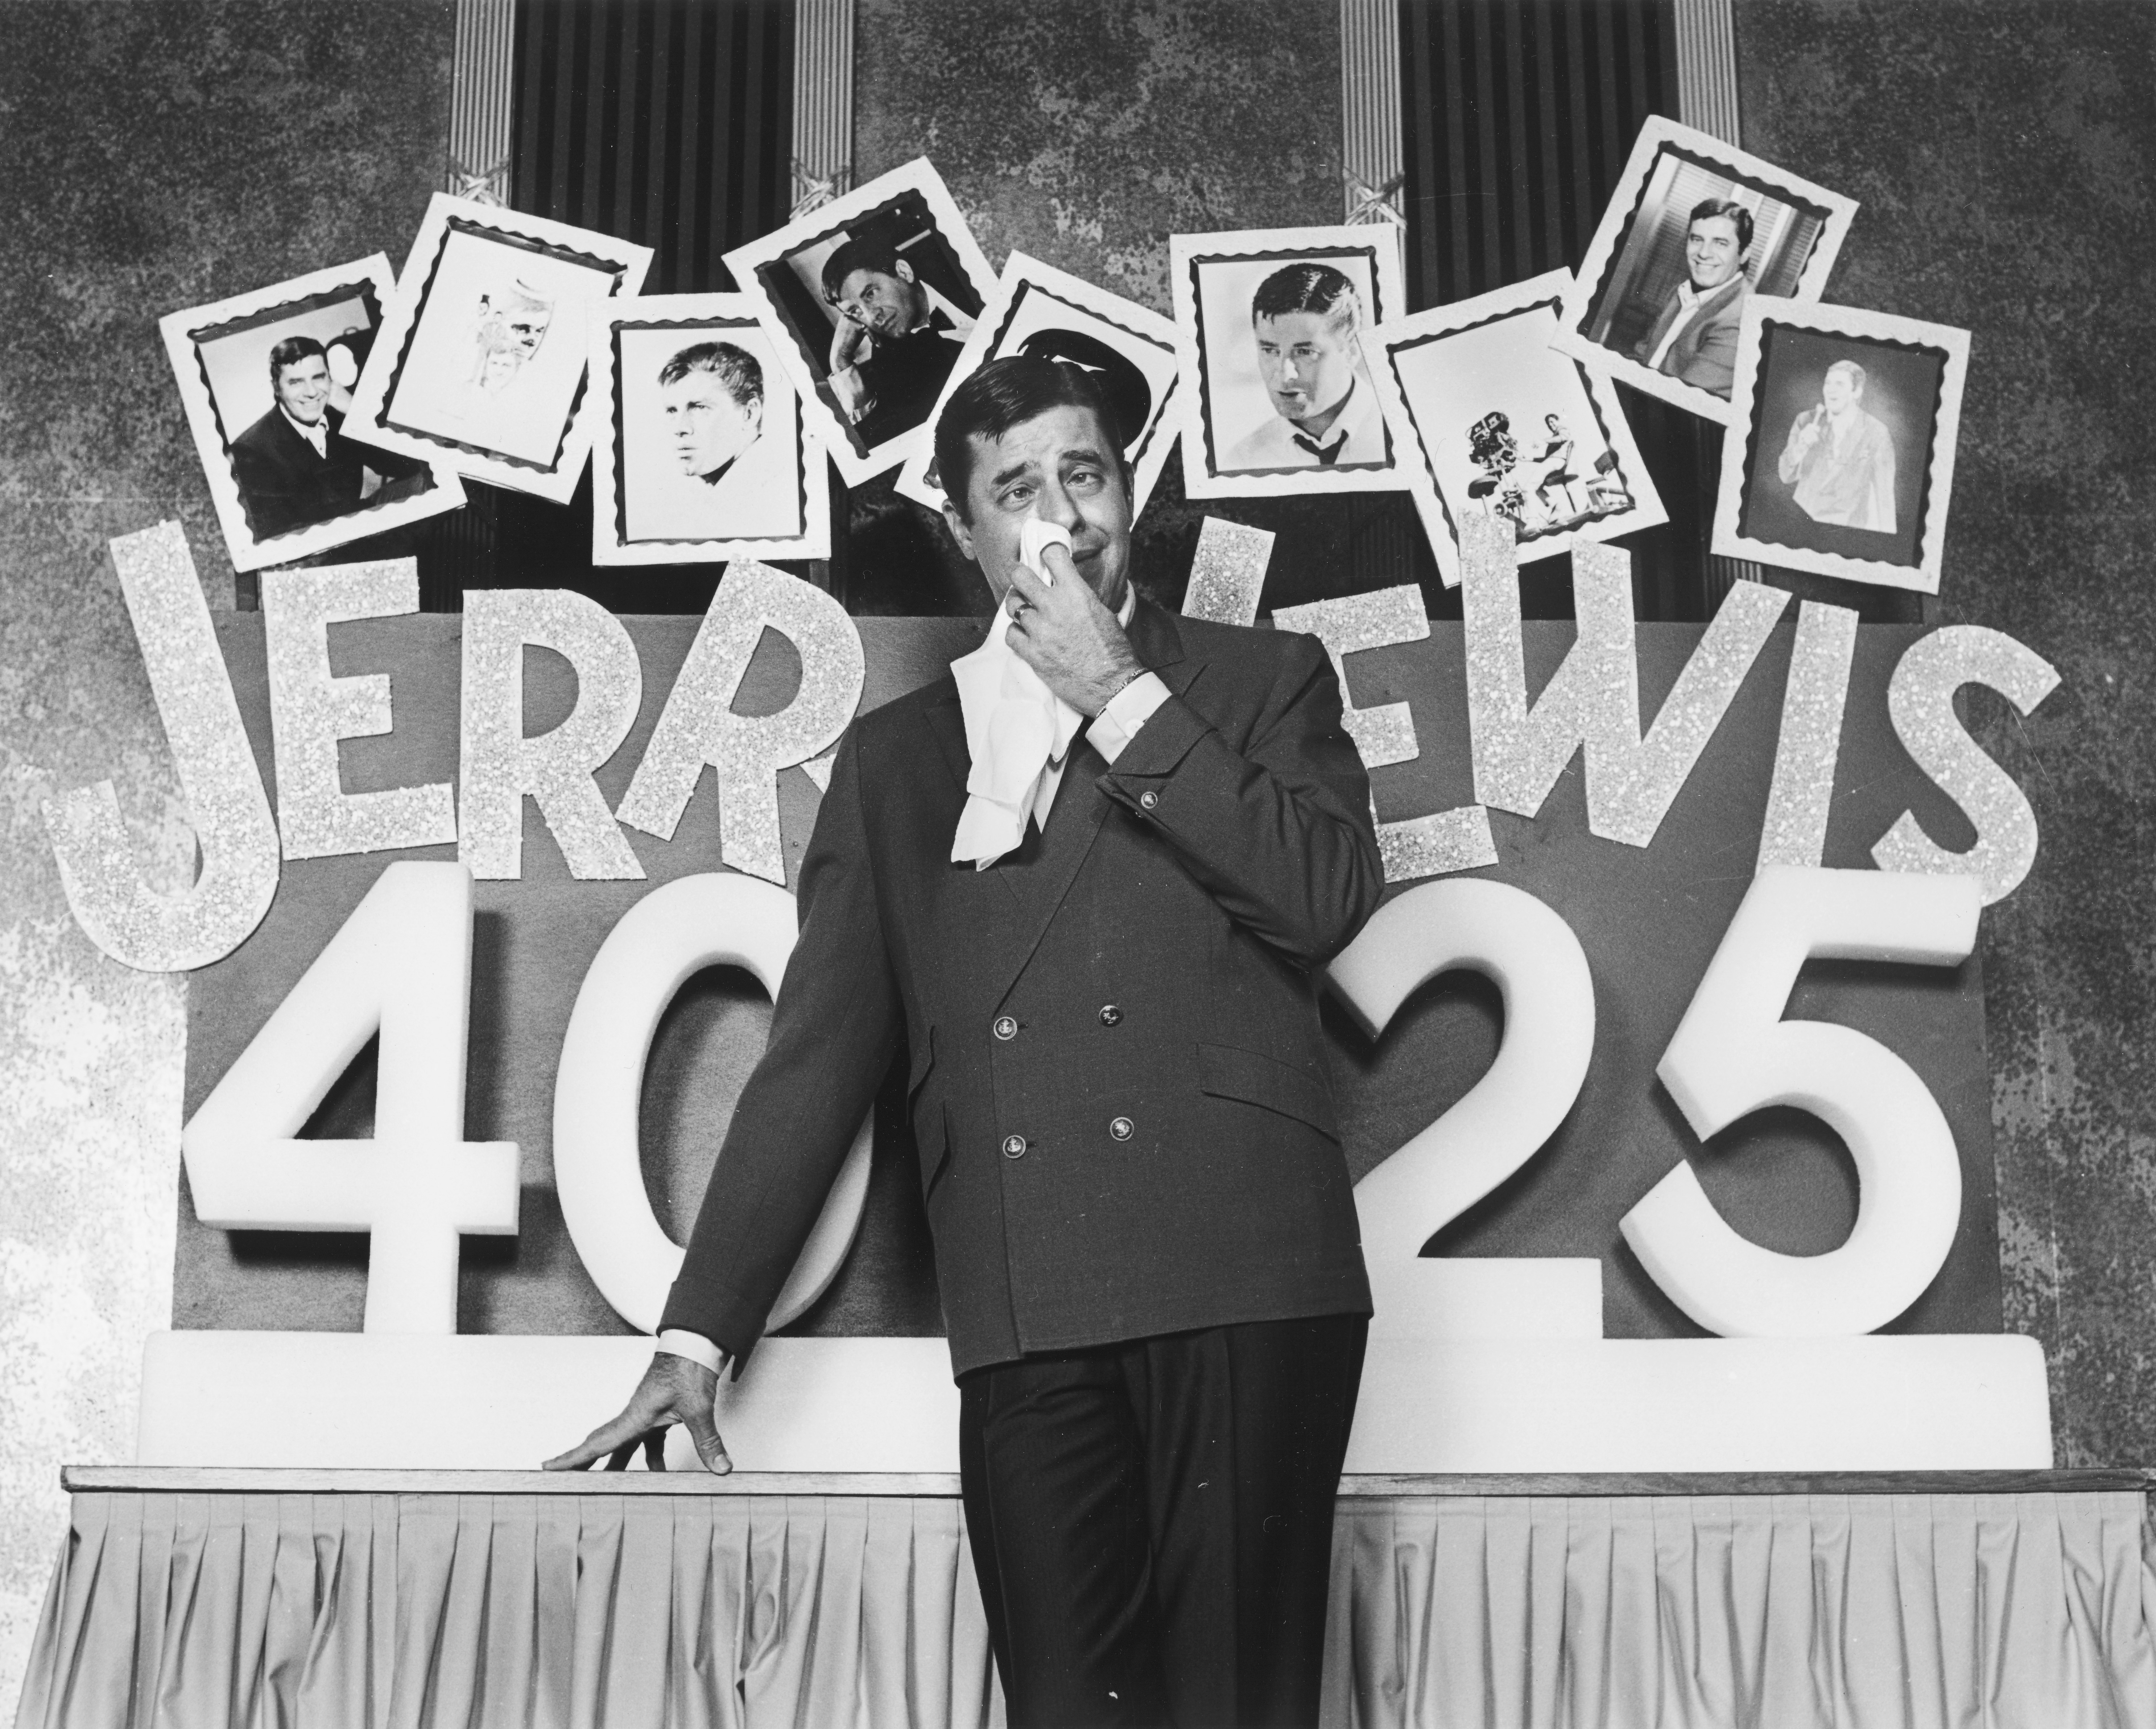 File #24013 - 1/14/1972 - 40 years in show business set-ups at Caesars Palace. CREDIT: Las Vegas News Bureau